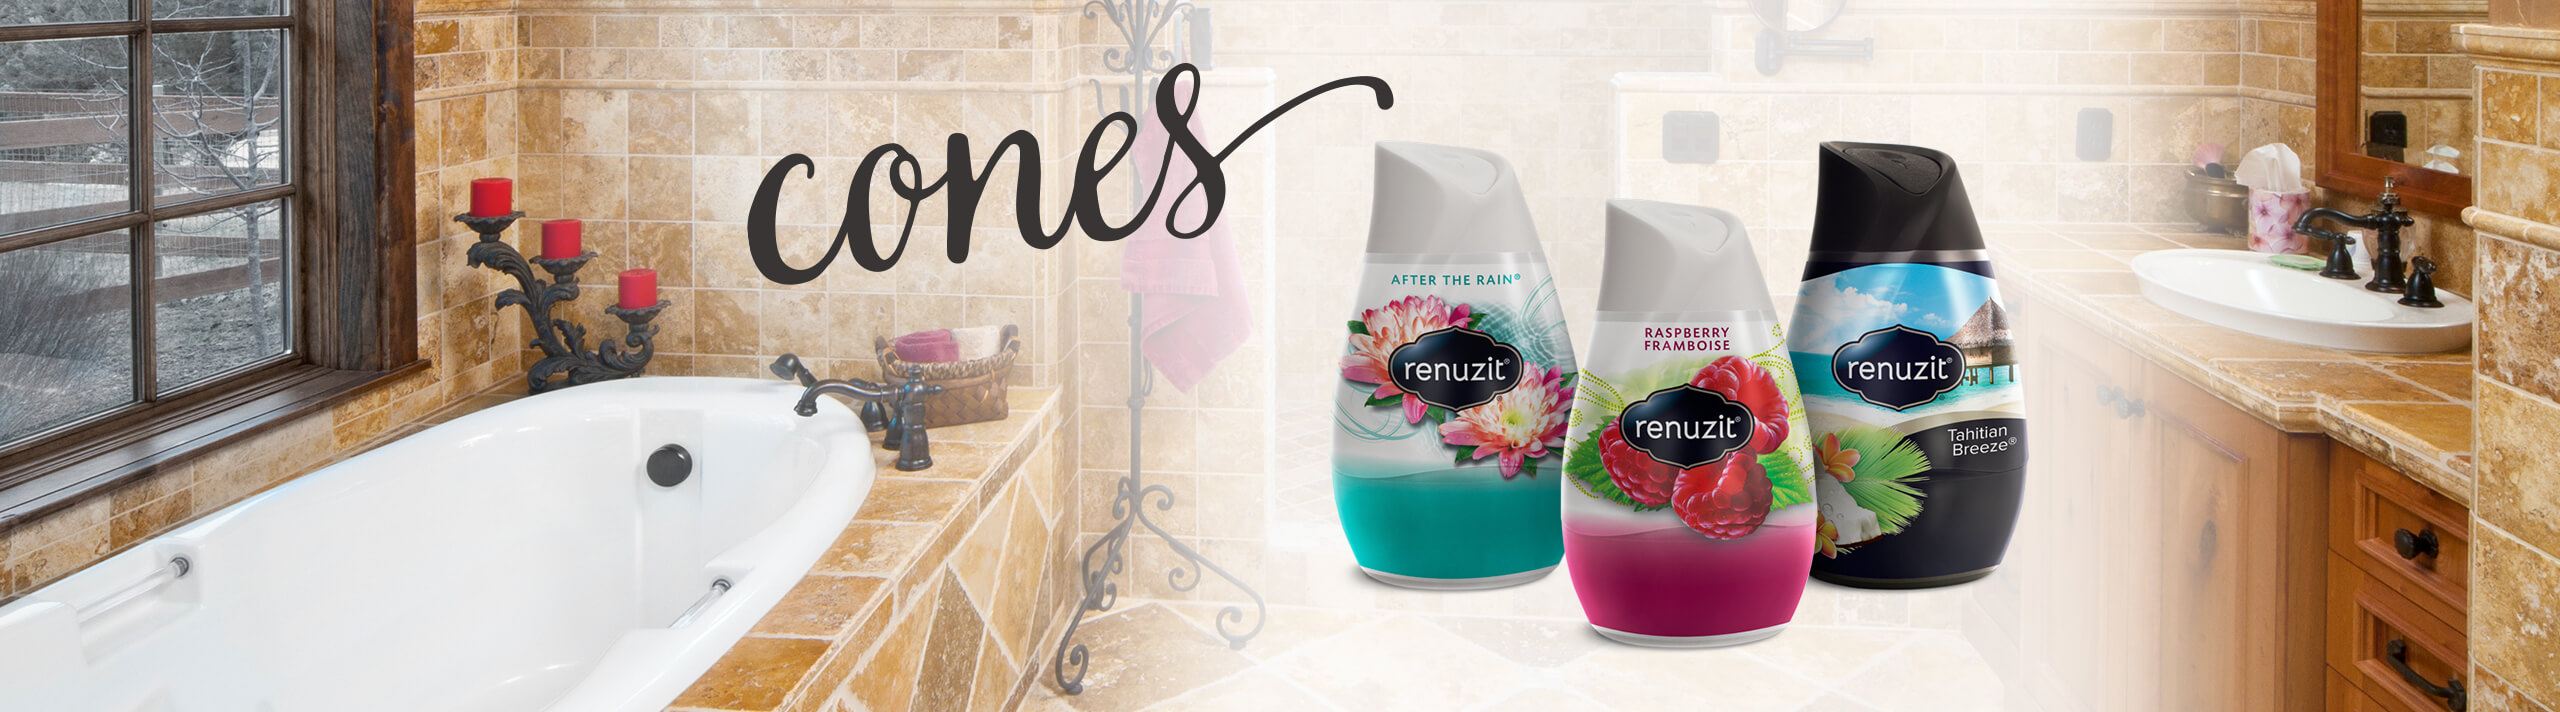 header-graphics-products-cones